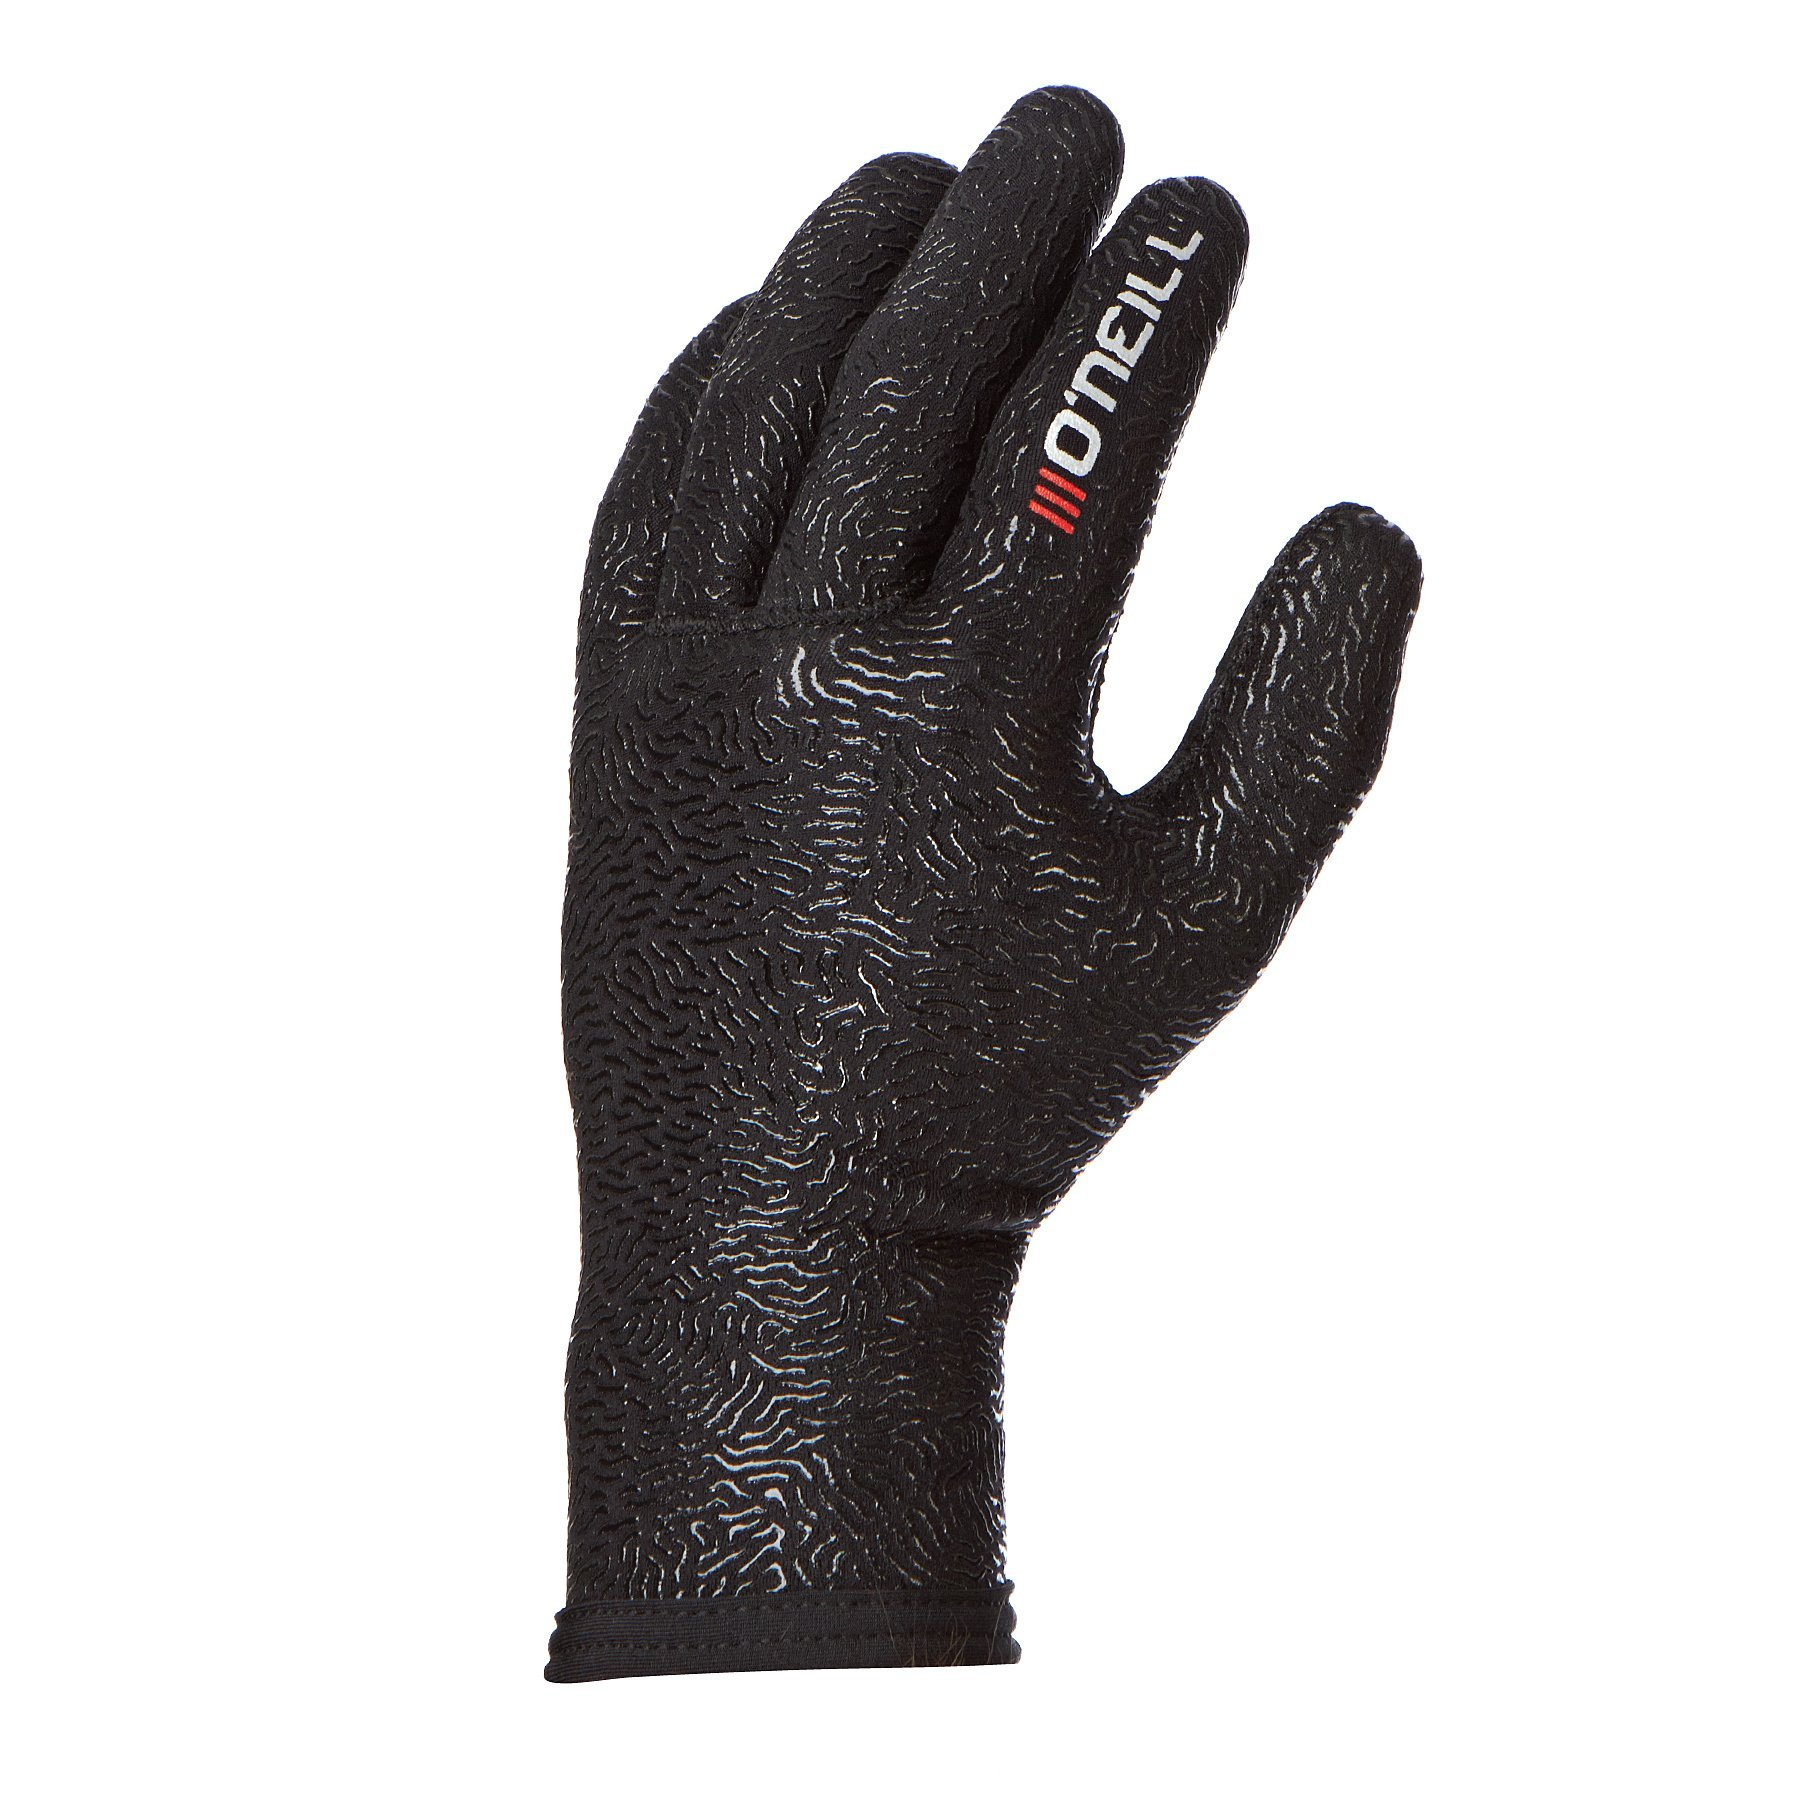 O Neill FLX Wetsuit Gloves Medium Black